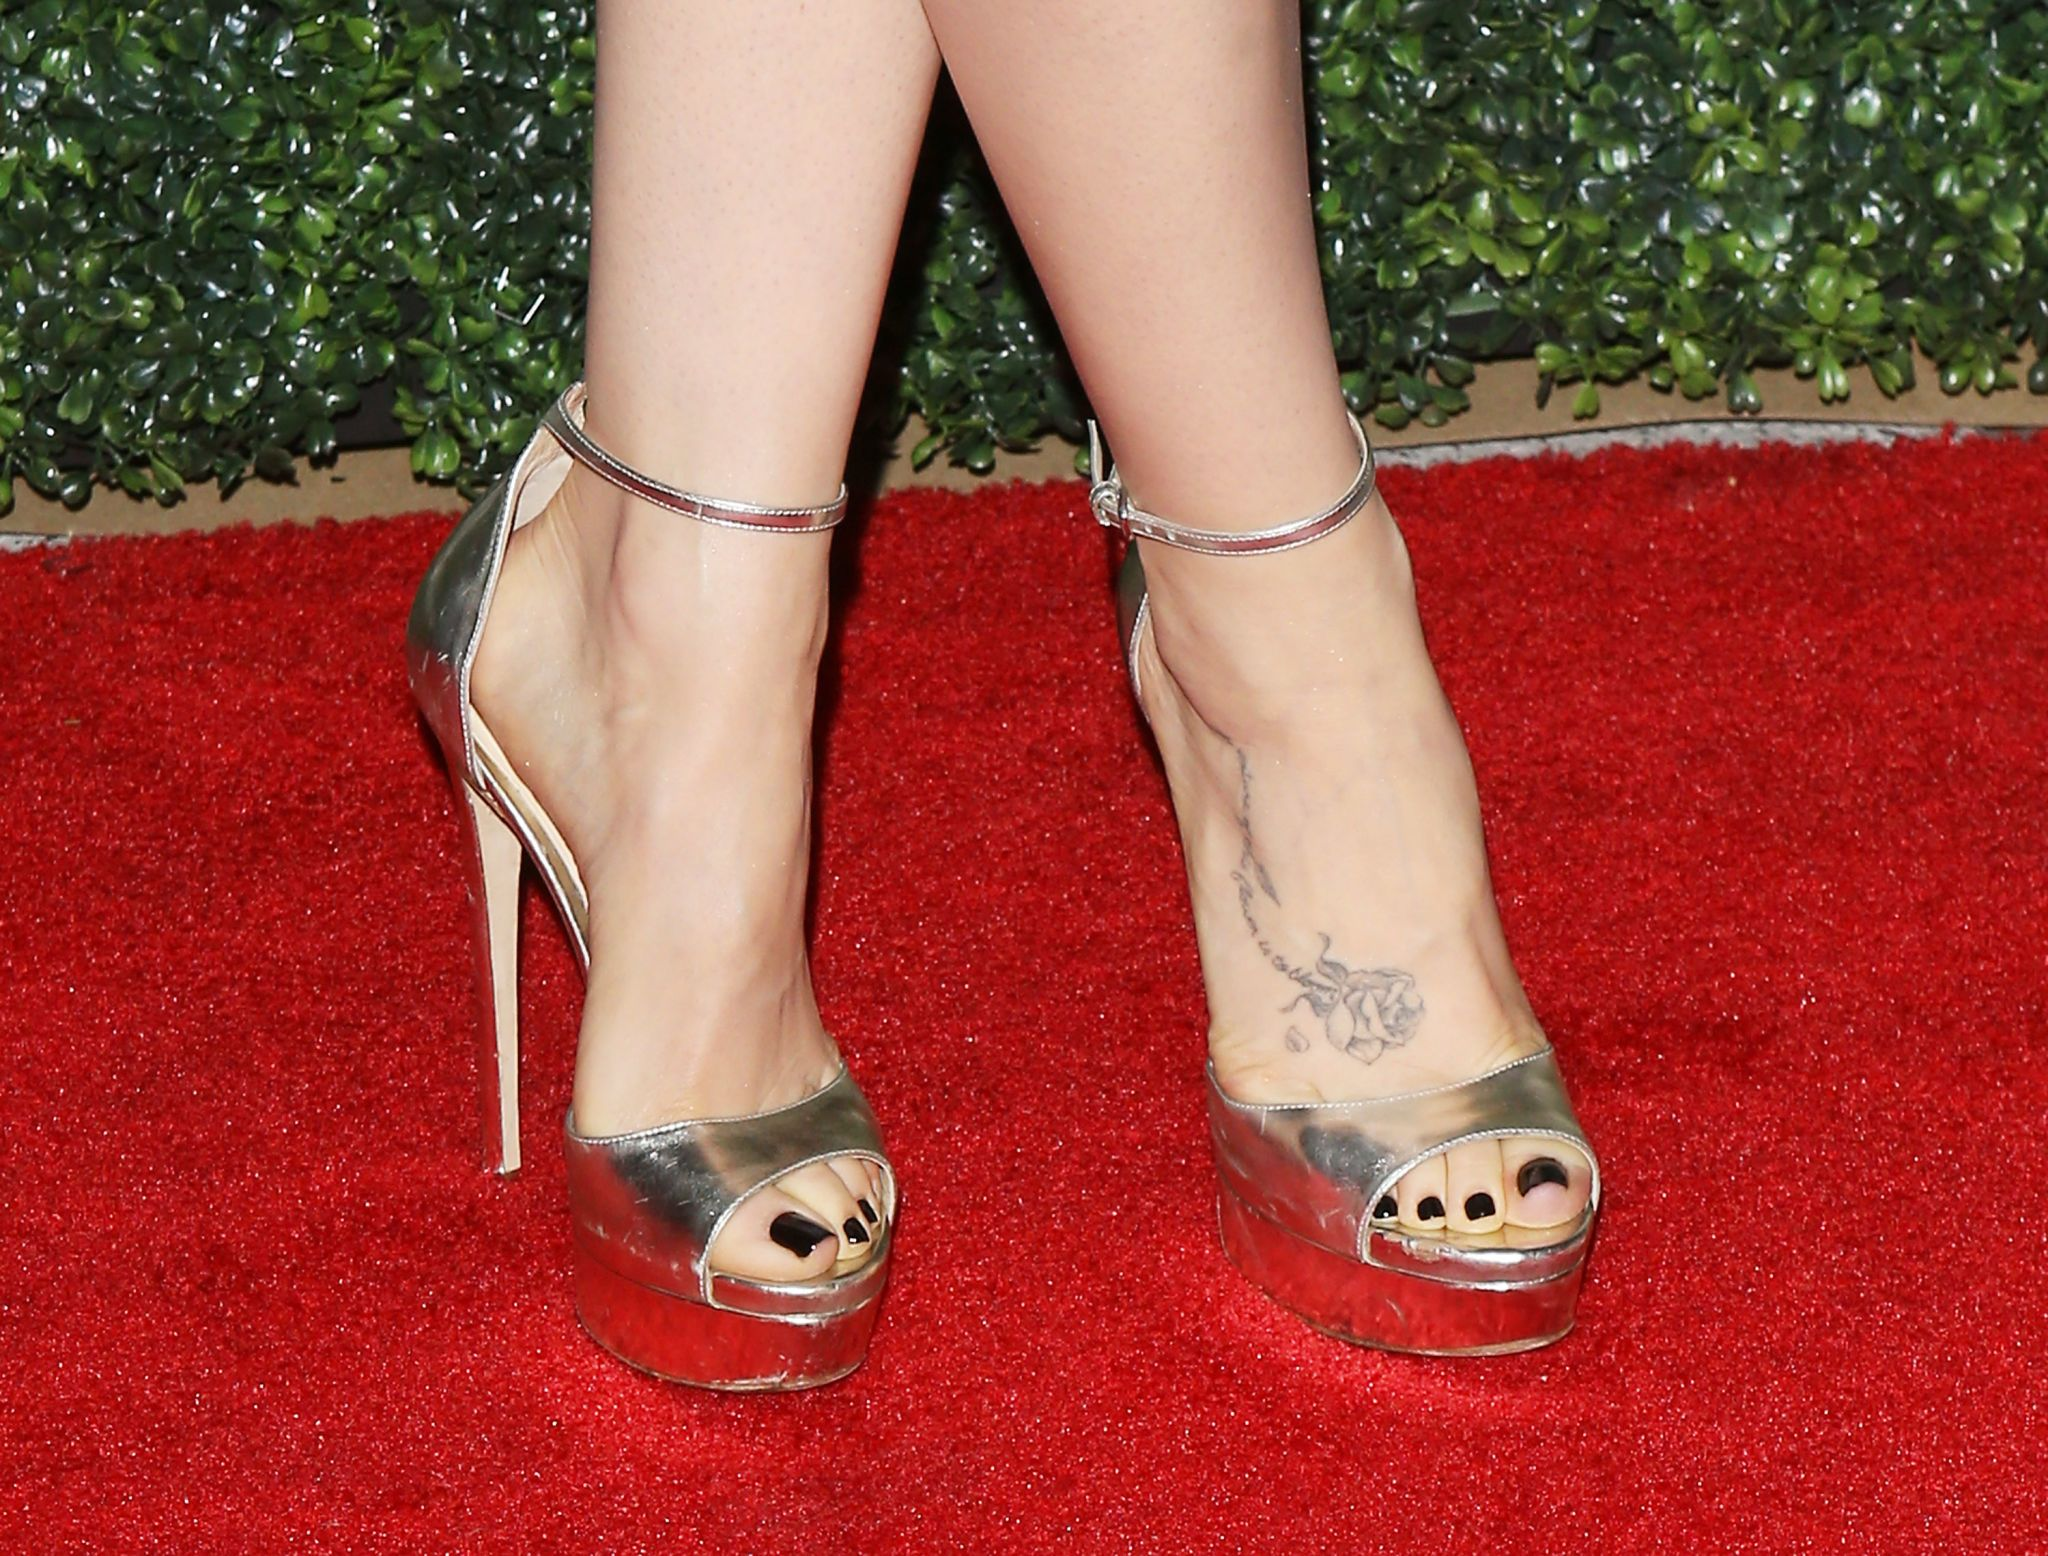 Lilly Collins Feet photo 5